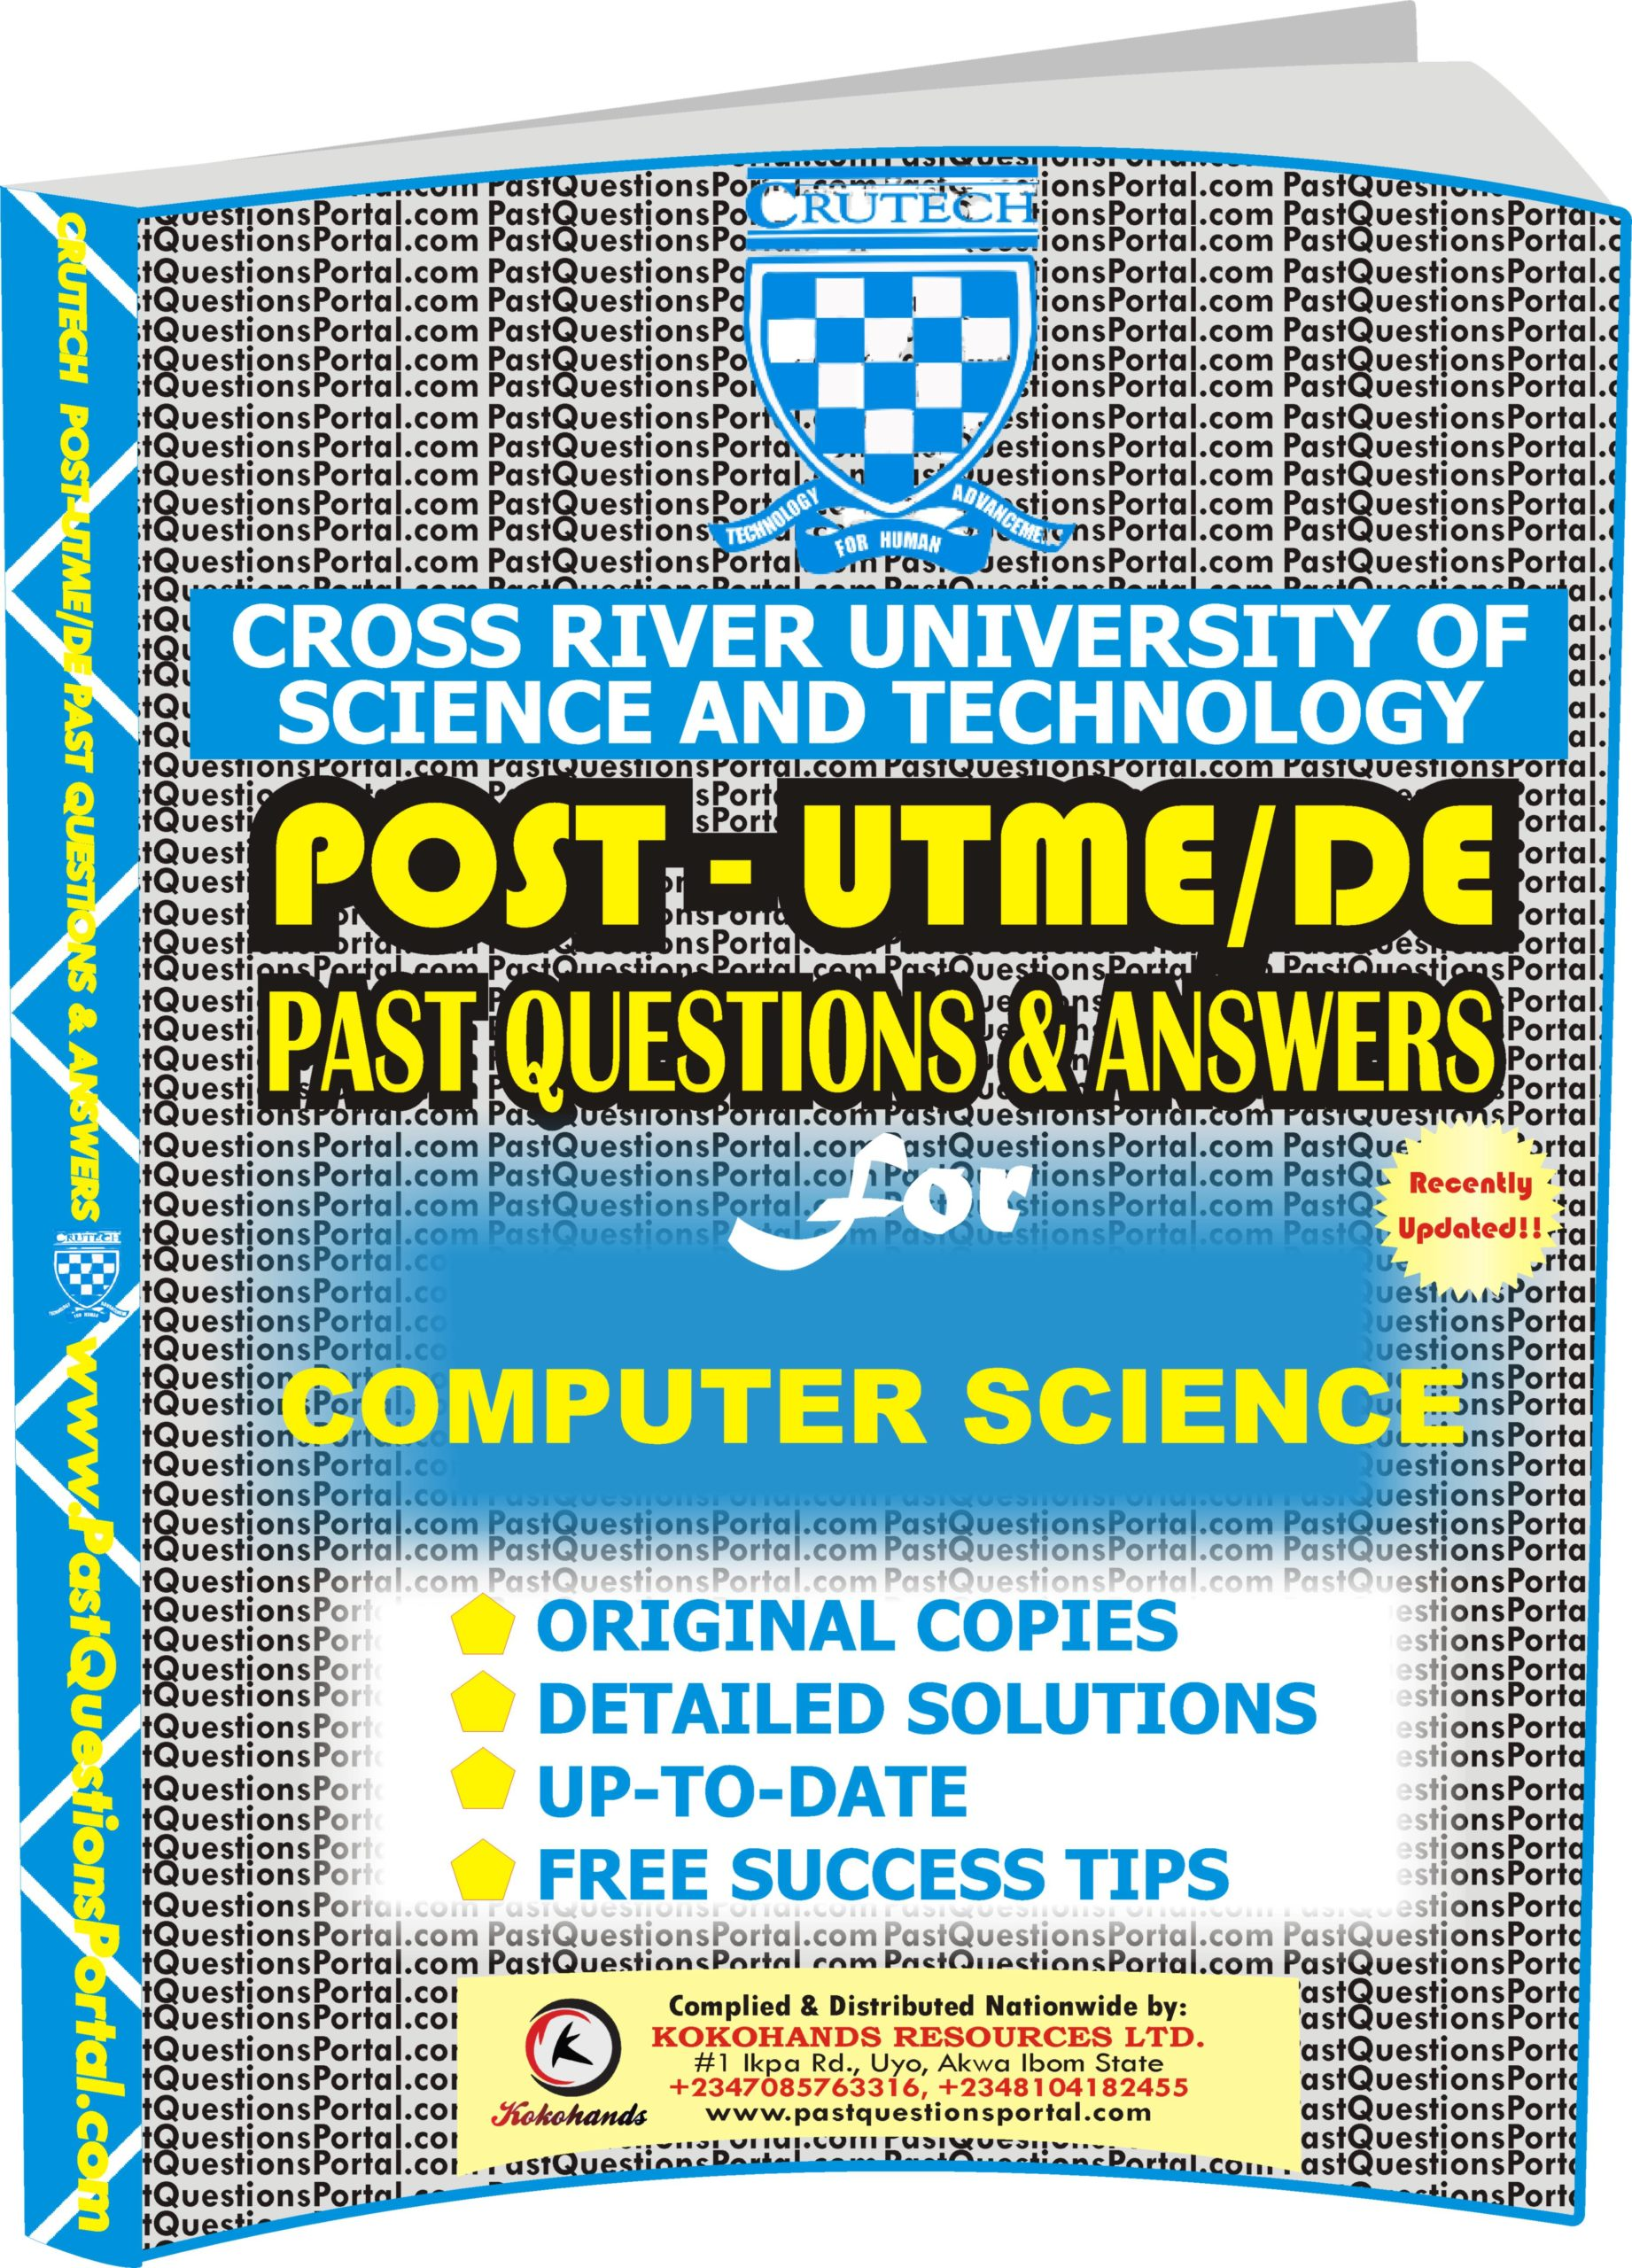 CRUTECH Post UTME Past Questions for COMPUTER SCIENCE